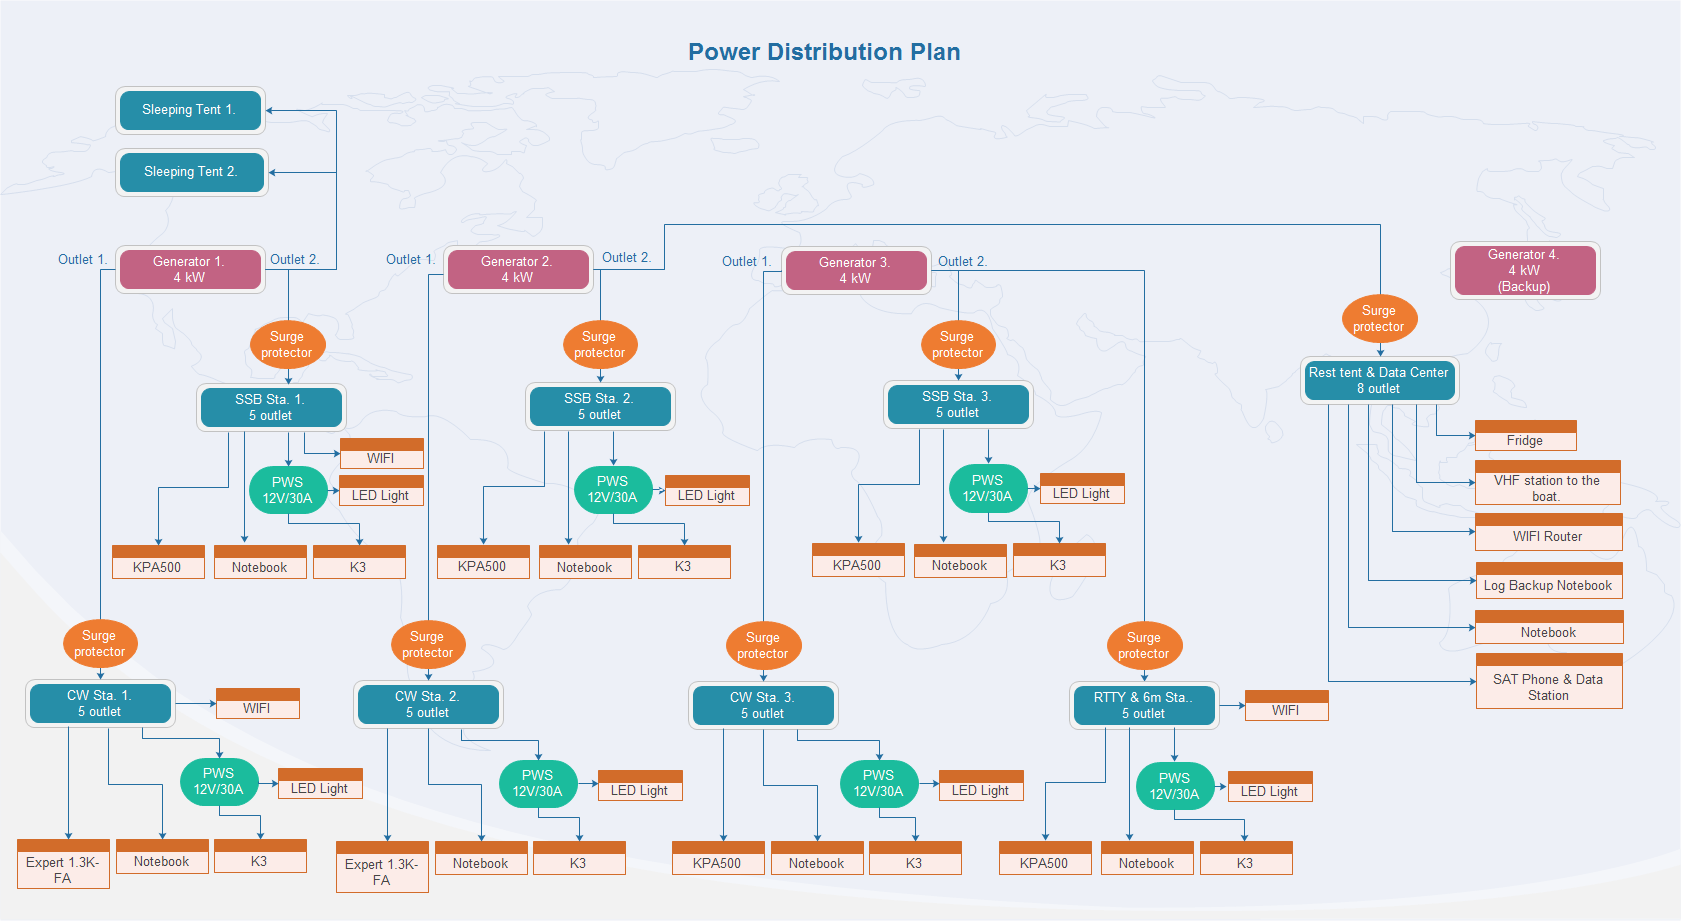 Ducie power distr plan